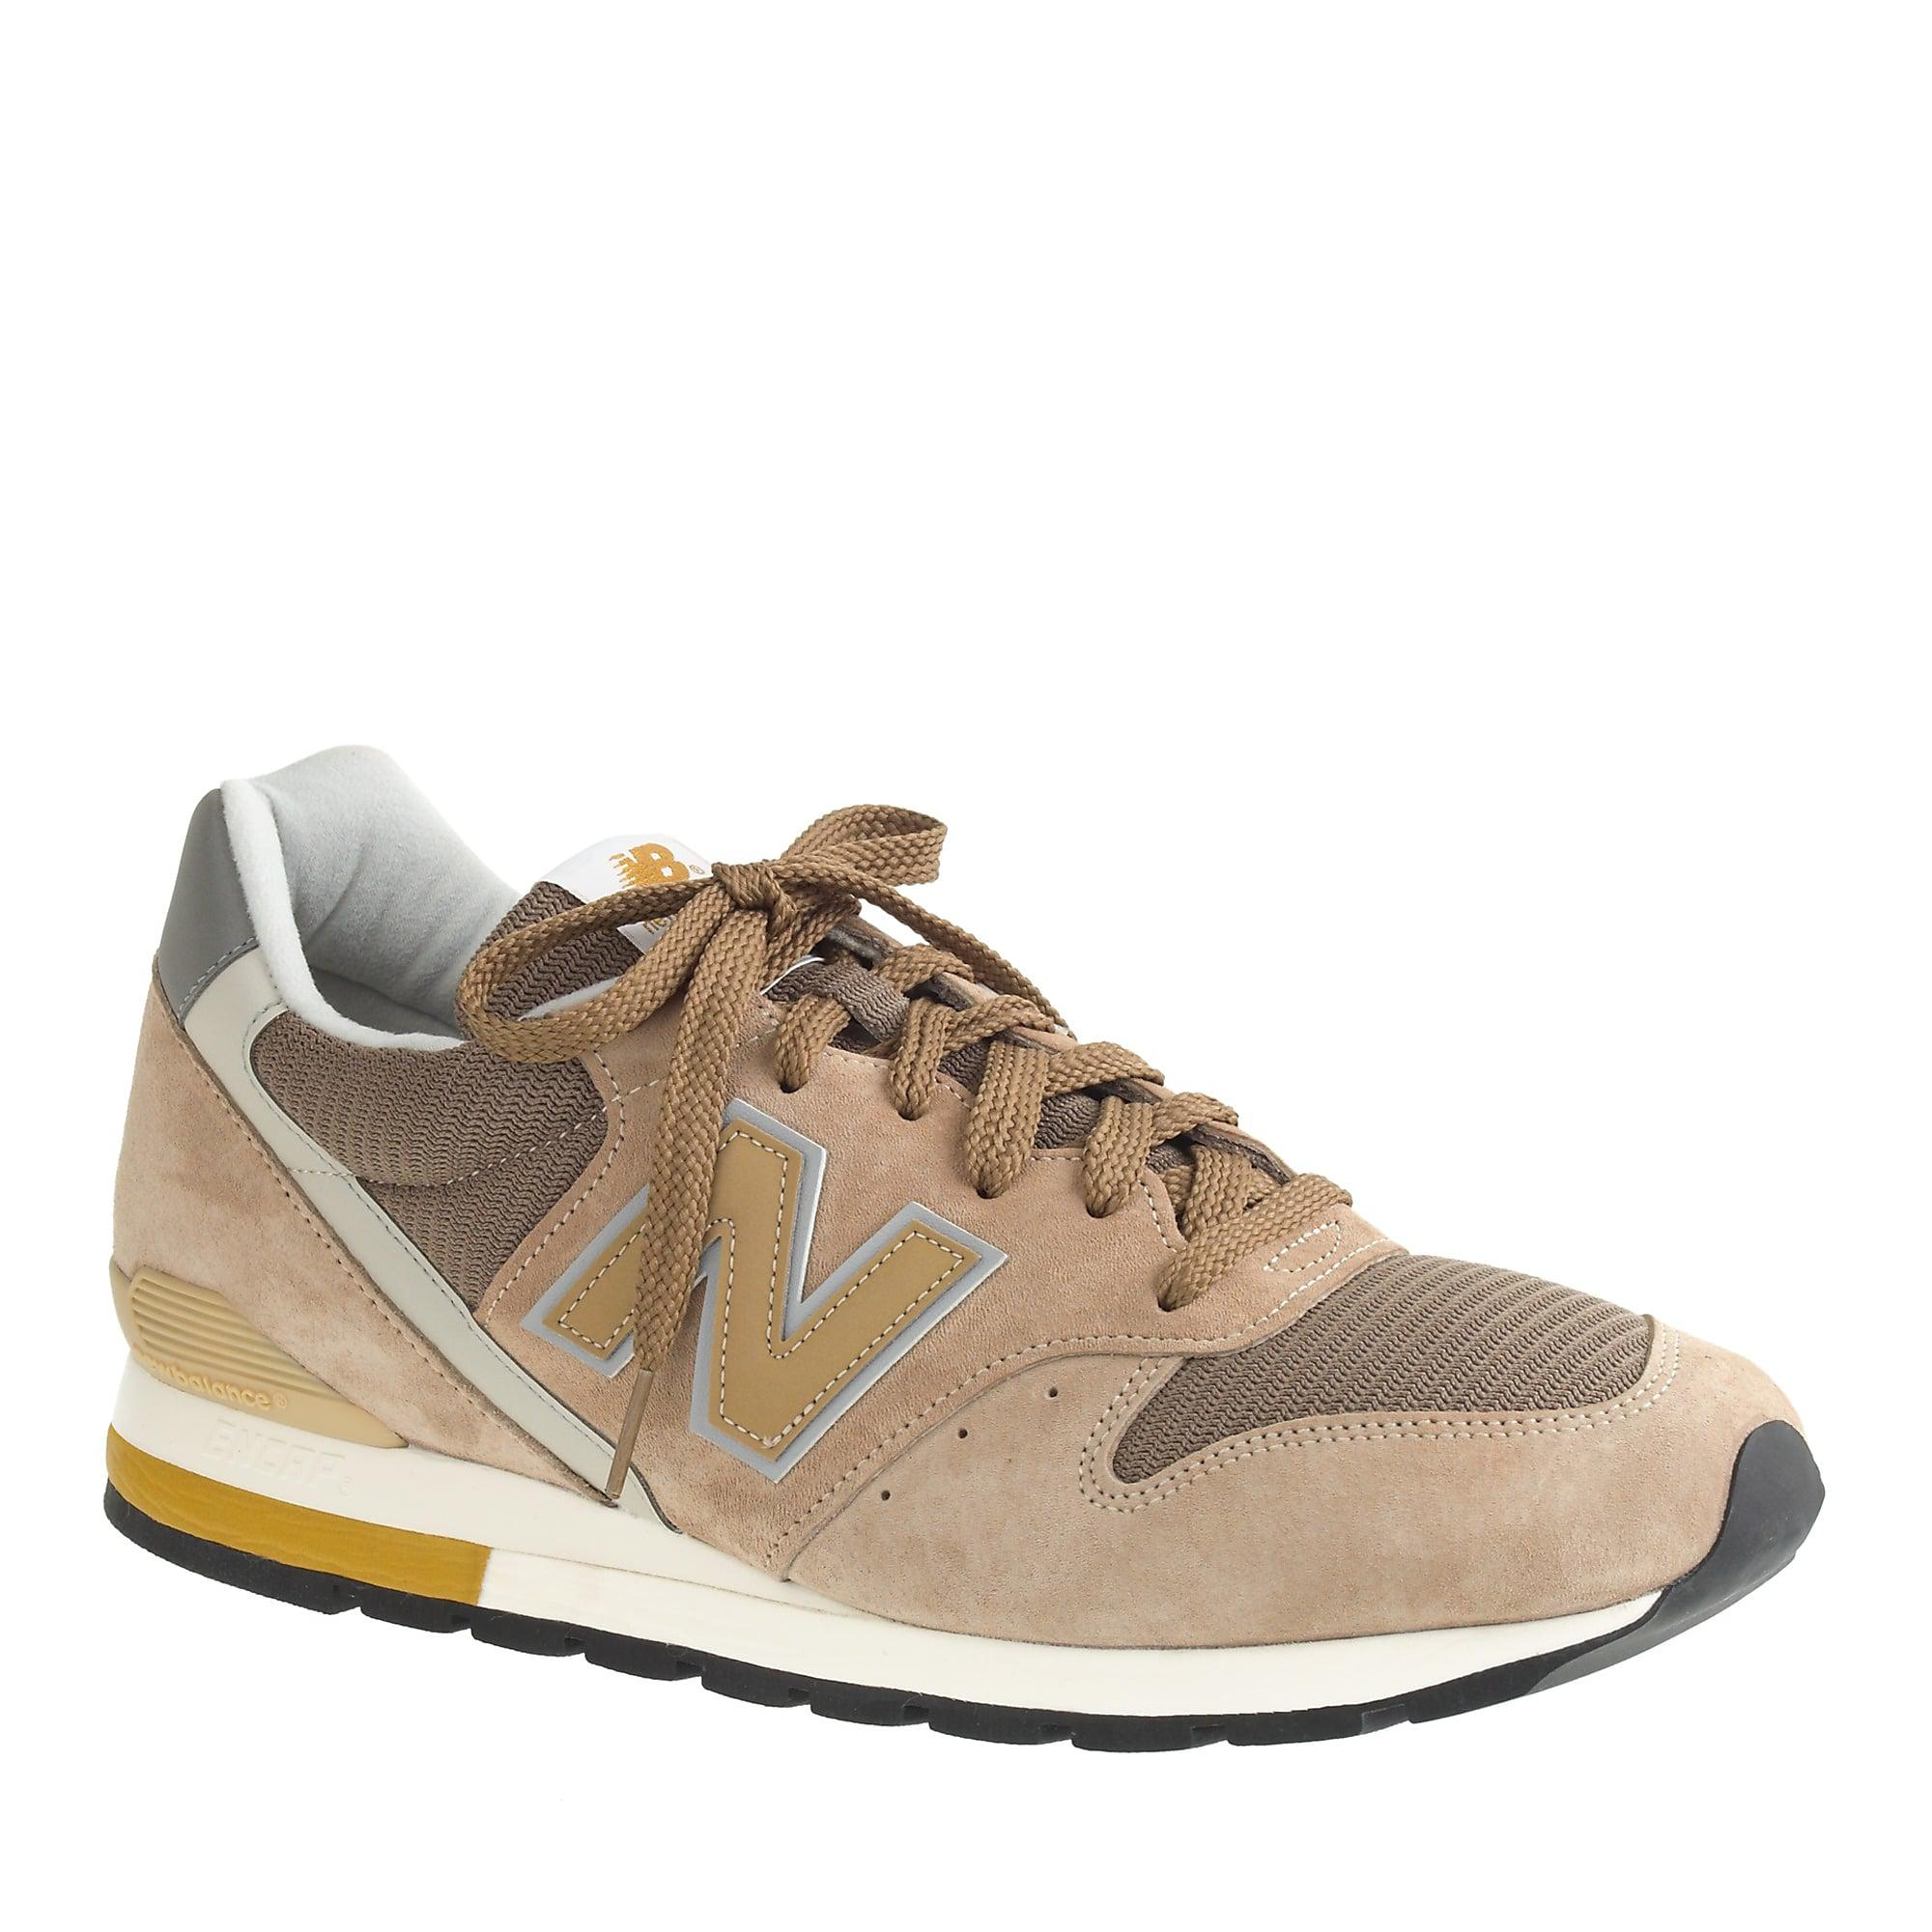 d1f020a18825f8 Lyst - New Balance 996 Sneakers in Brown for Men